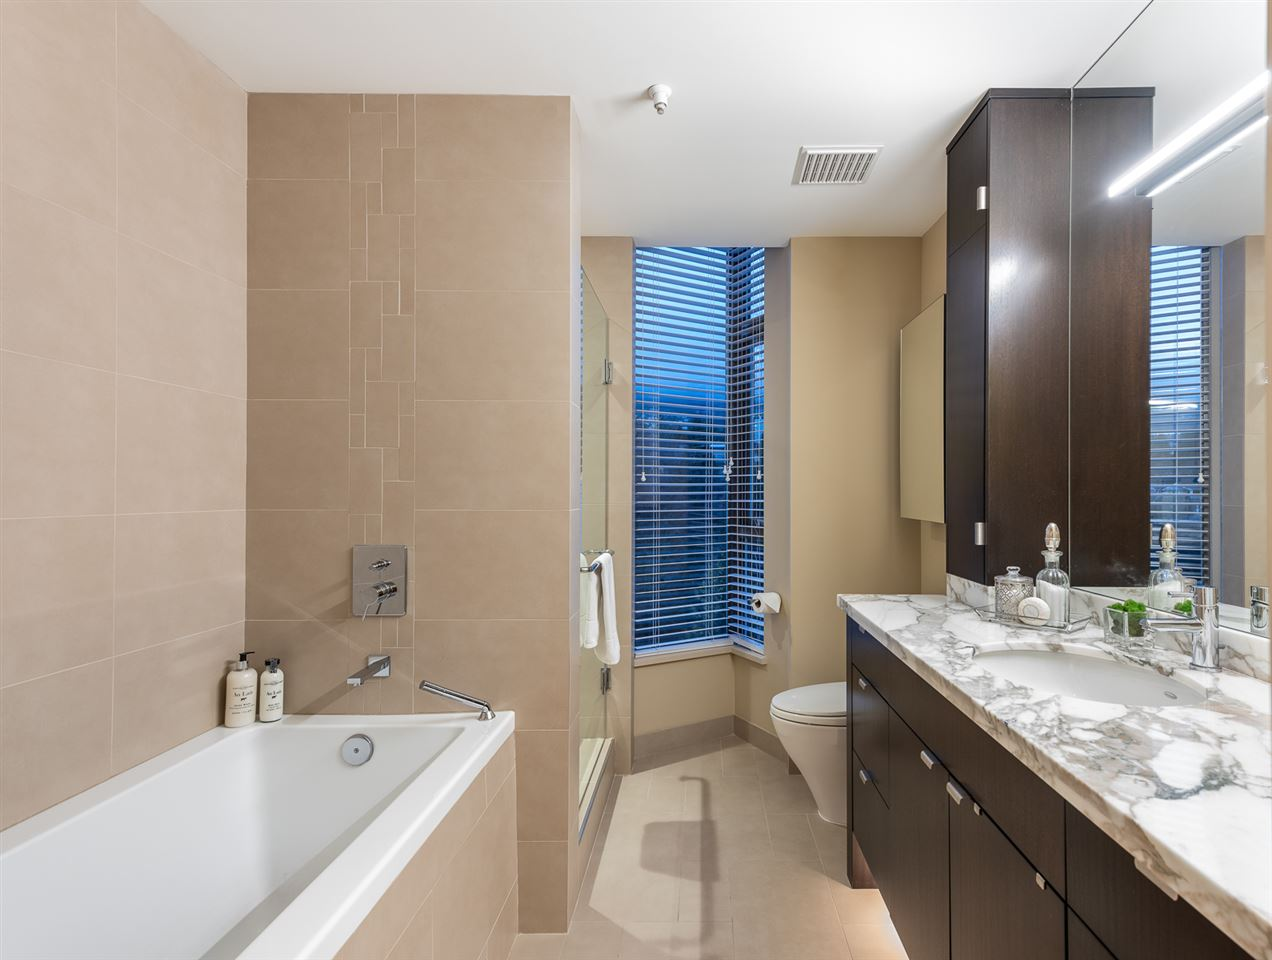 702 570 18TH STREET - Ambleside Apartment/Condo for sale, 2 Bedrooms (R2560371) - #13